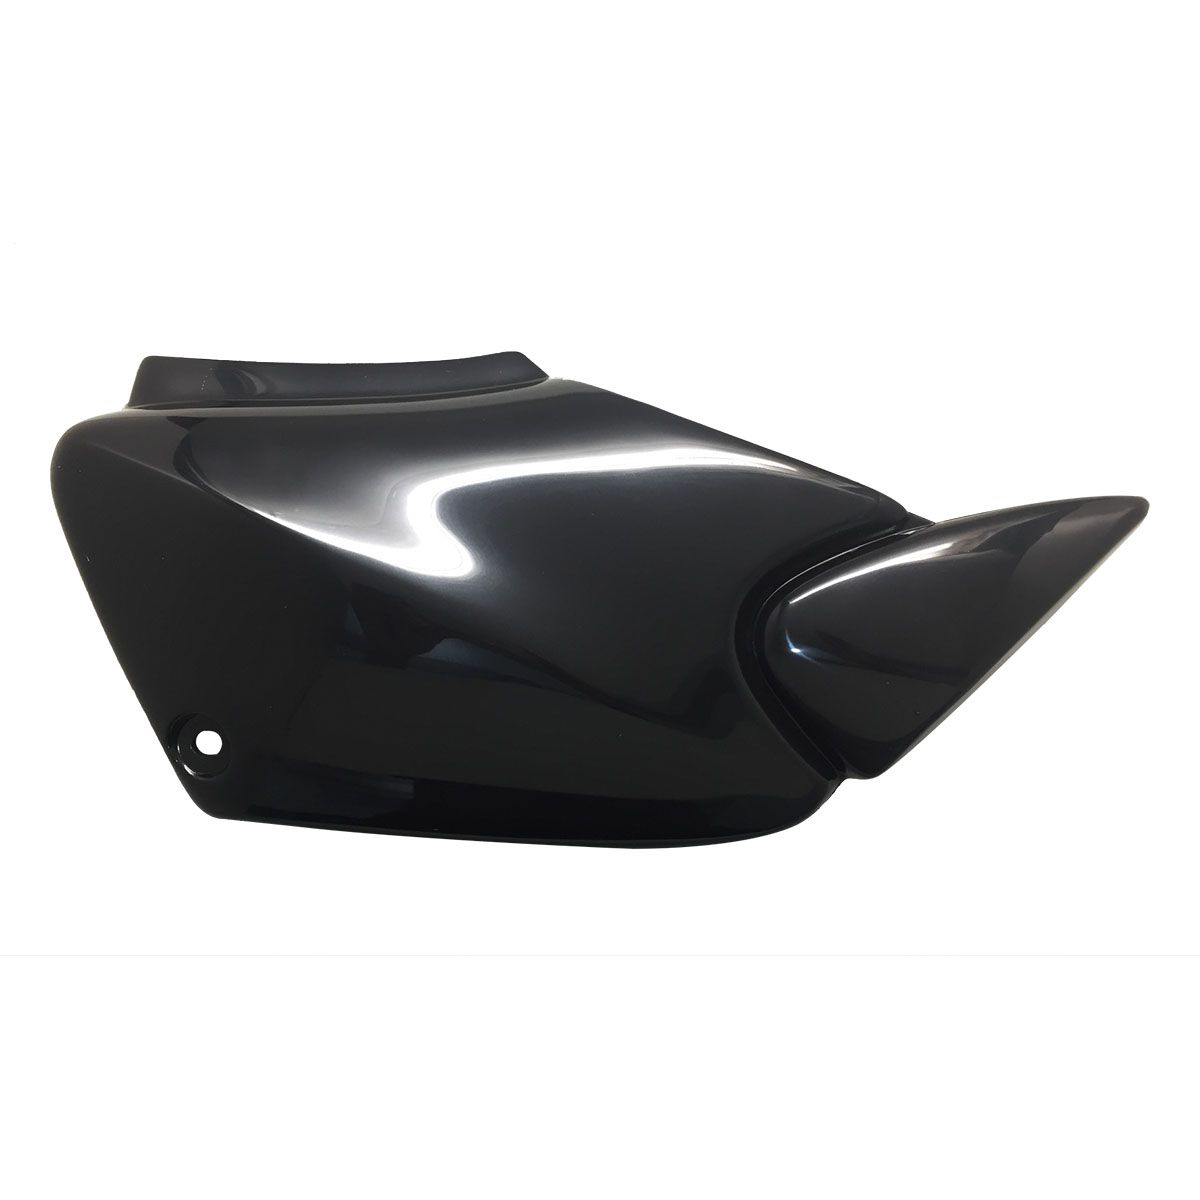 Tampa Lateral Honda CG 125 Fan 2005 a 2008 Preto Injetado - Carenagem Sportive